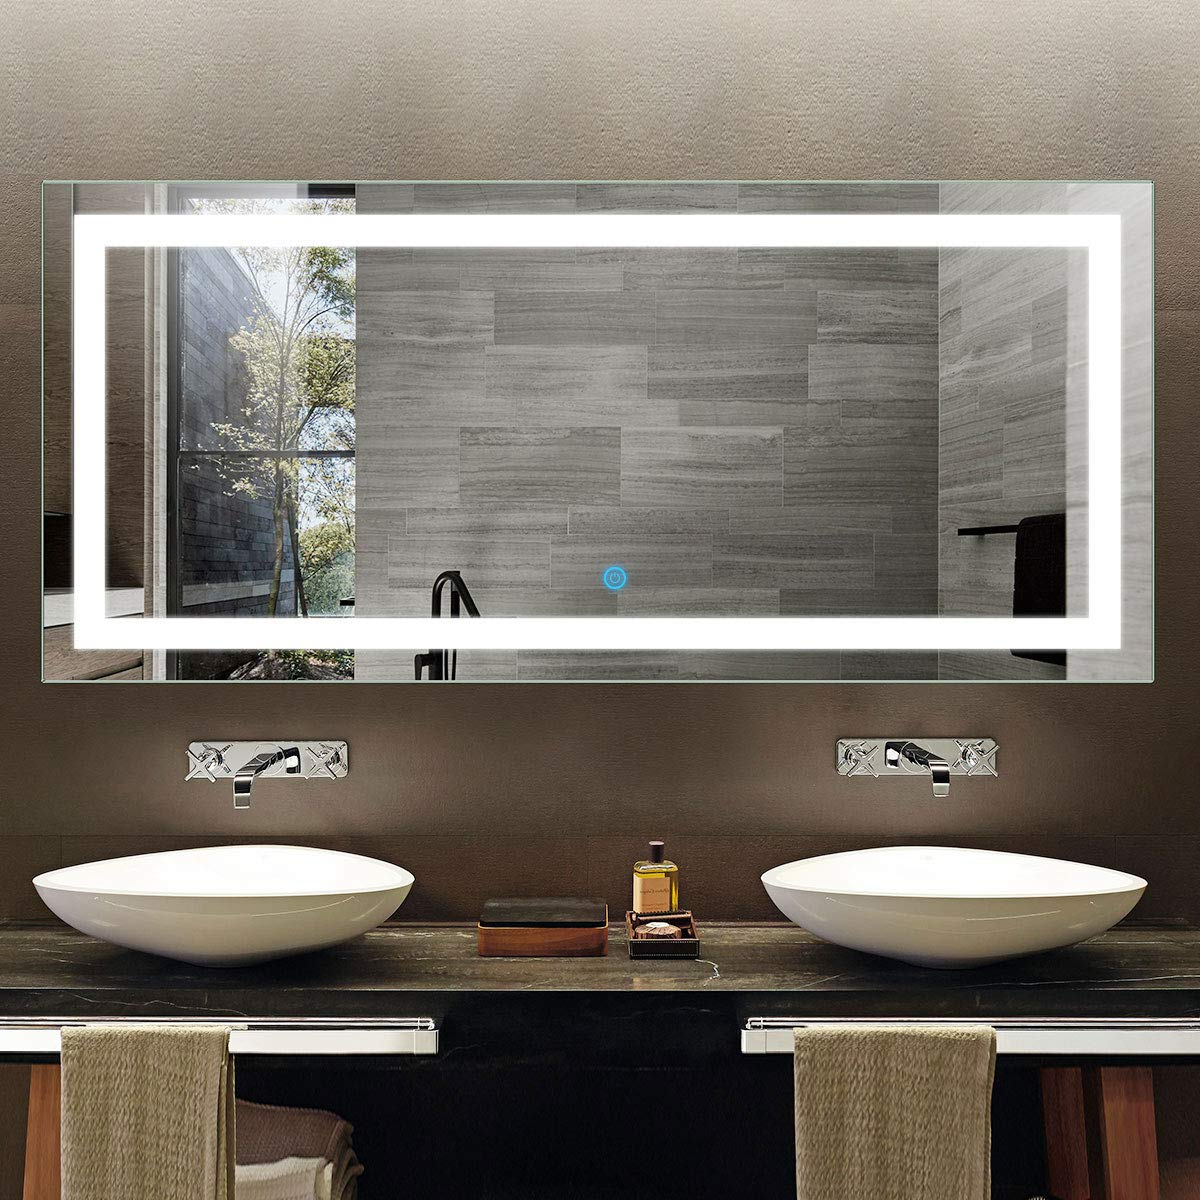 Large Modern Lighted Wall Mounted Bathroom Vanity Mirror, Led Frameless Backlit Illuminated Wall Mirror, Rectangle Horizontally White Mirrors For With Well Liked Lighted Wall Mirrors (View 17 of 20)